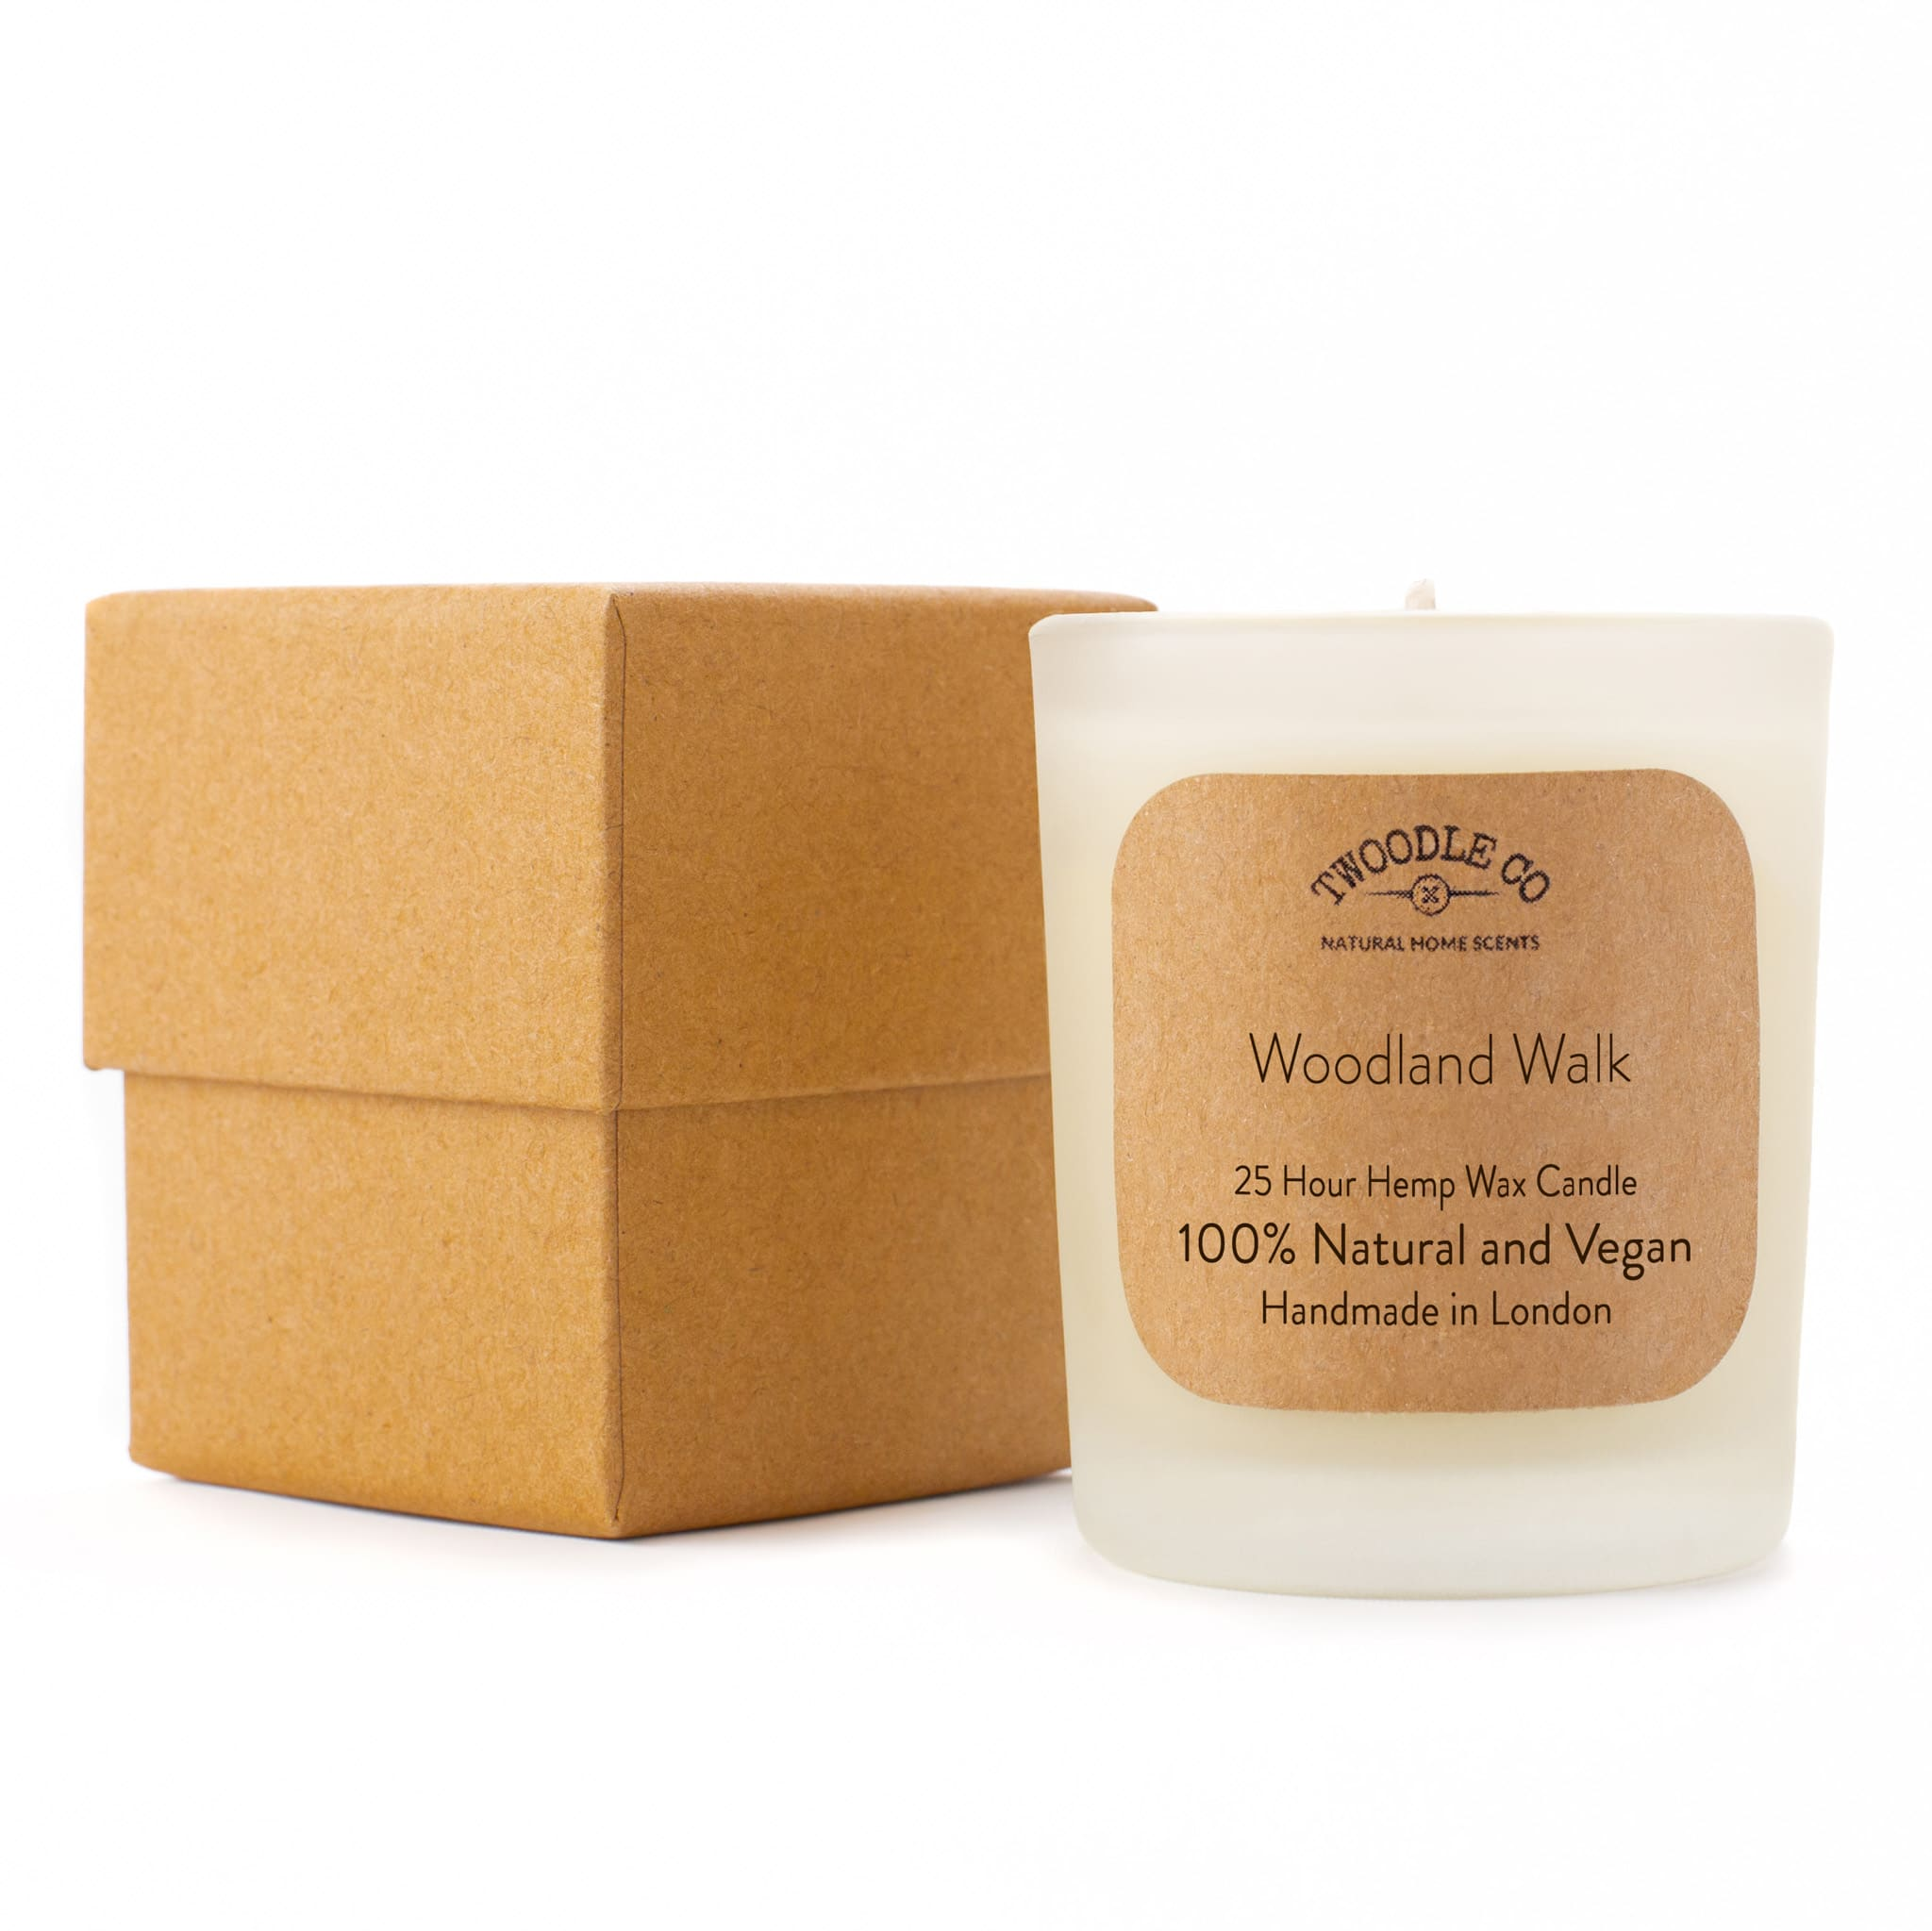 Woodland Walk Small Scented Hemp Wax Christmas candle by Twoodle Co Natural Home Scents